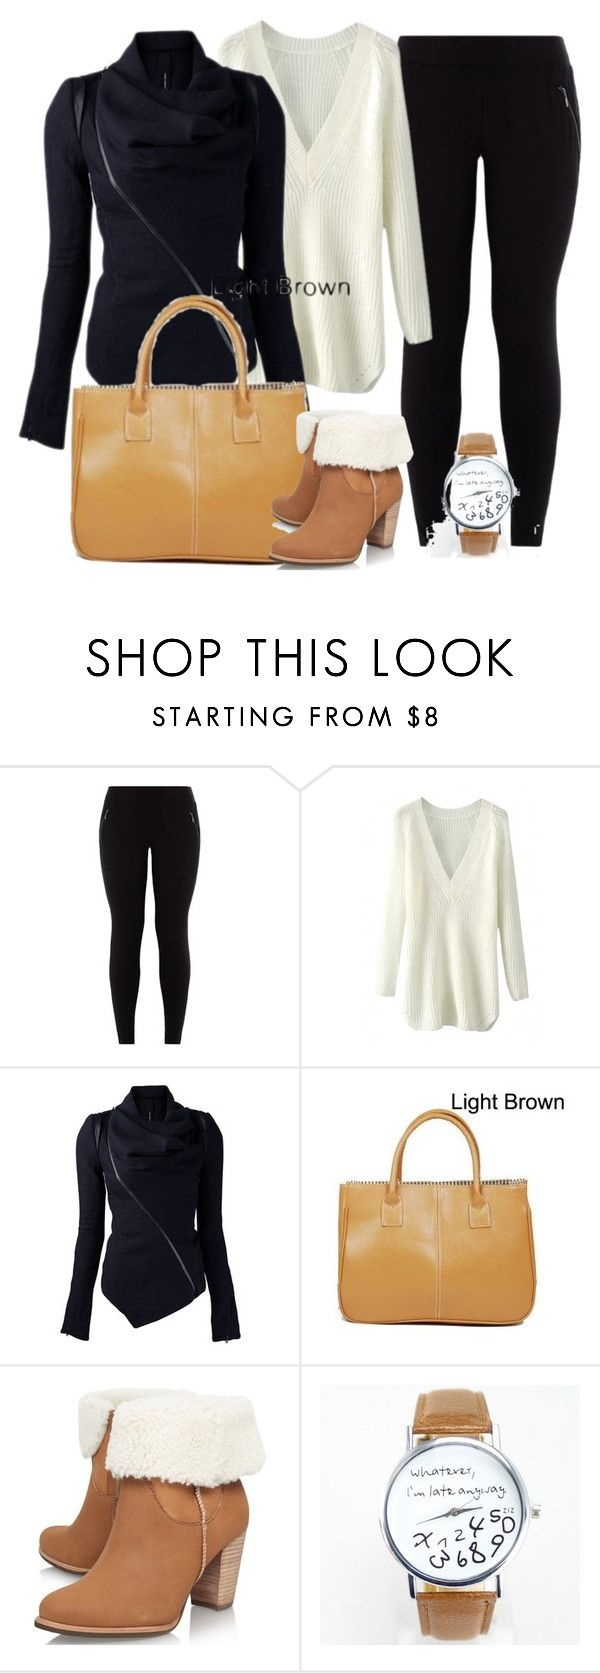 """""""Fall Party Outfit 2015"""" by myfriendshop ❤ liked on Polyvore featuring New Look and UGG Australia"""